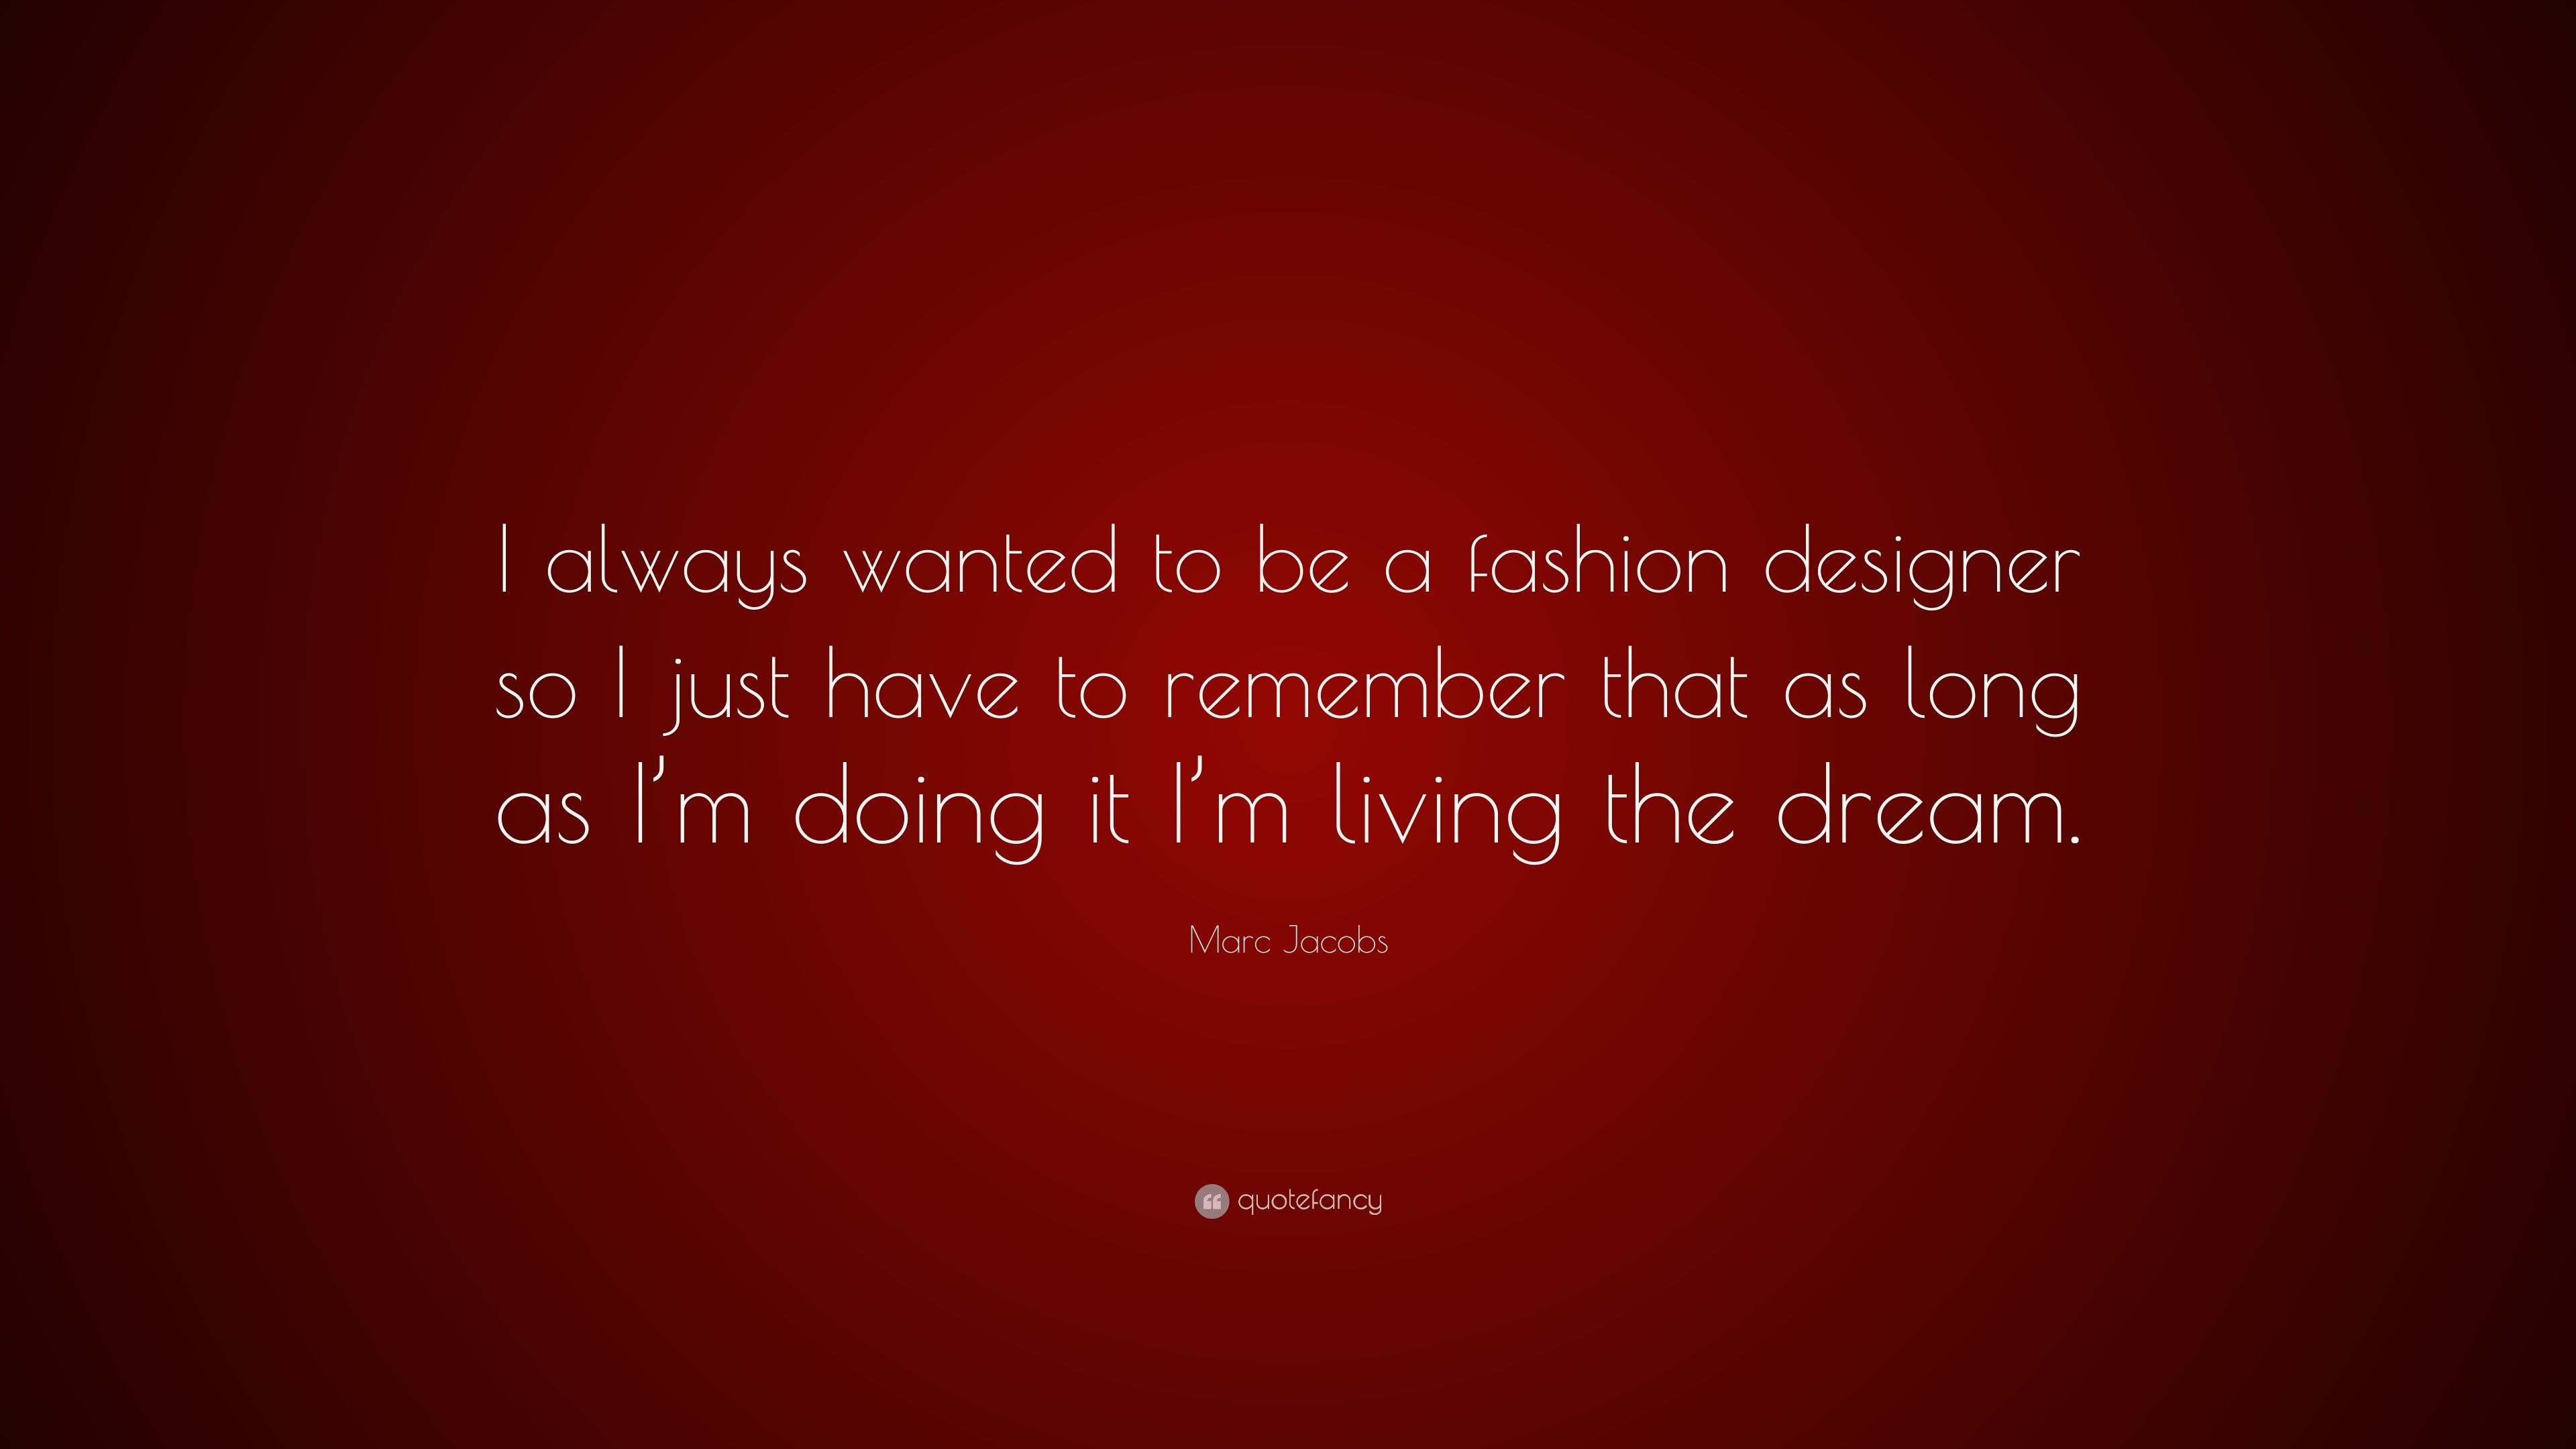 Marc Jacobs Quote I Always Wanted To Be A Fashion Designer So I Just Have To Remember That As Long As I M Doing It I M Living The Dream 7 Wallpapers Quotefancy